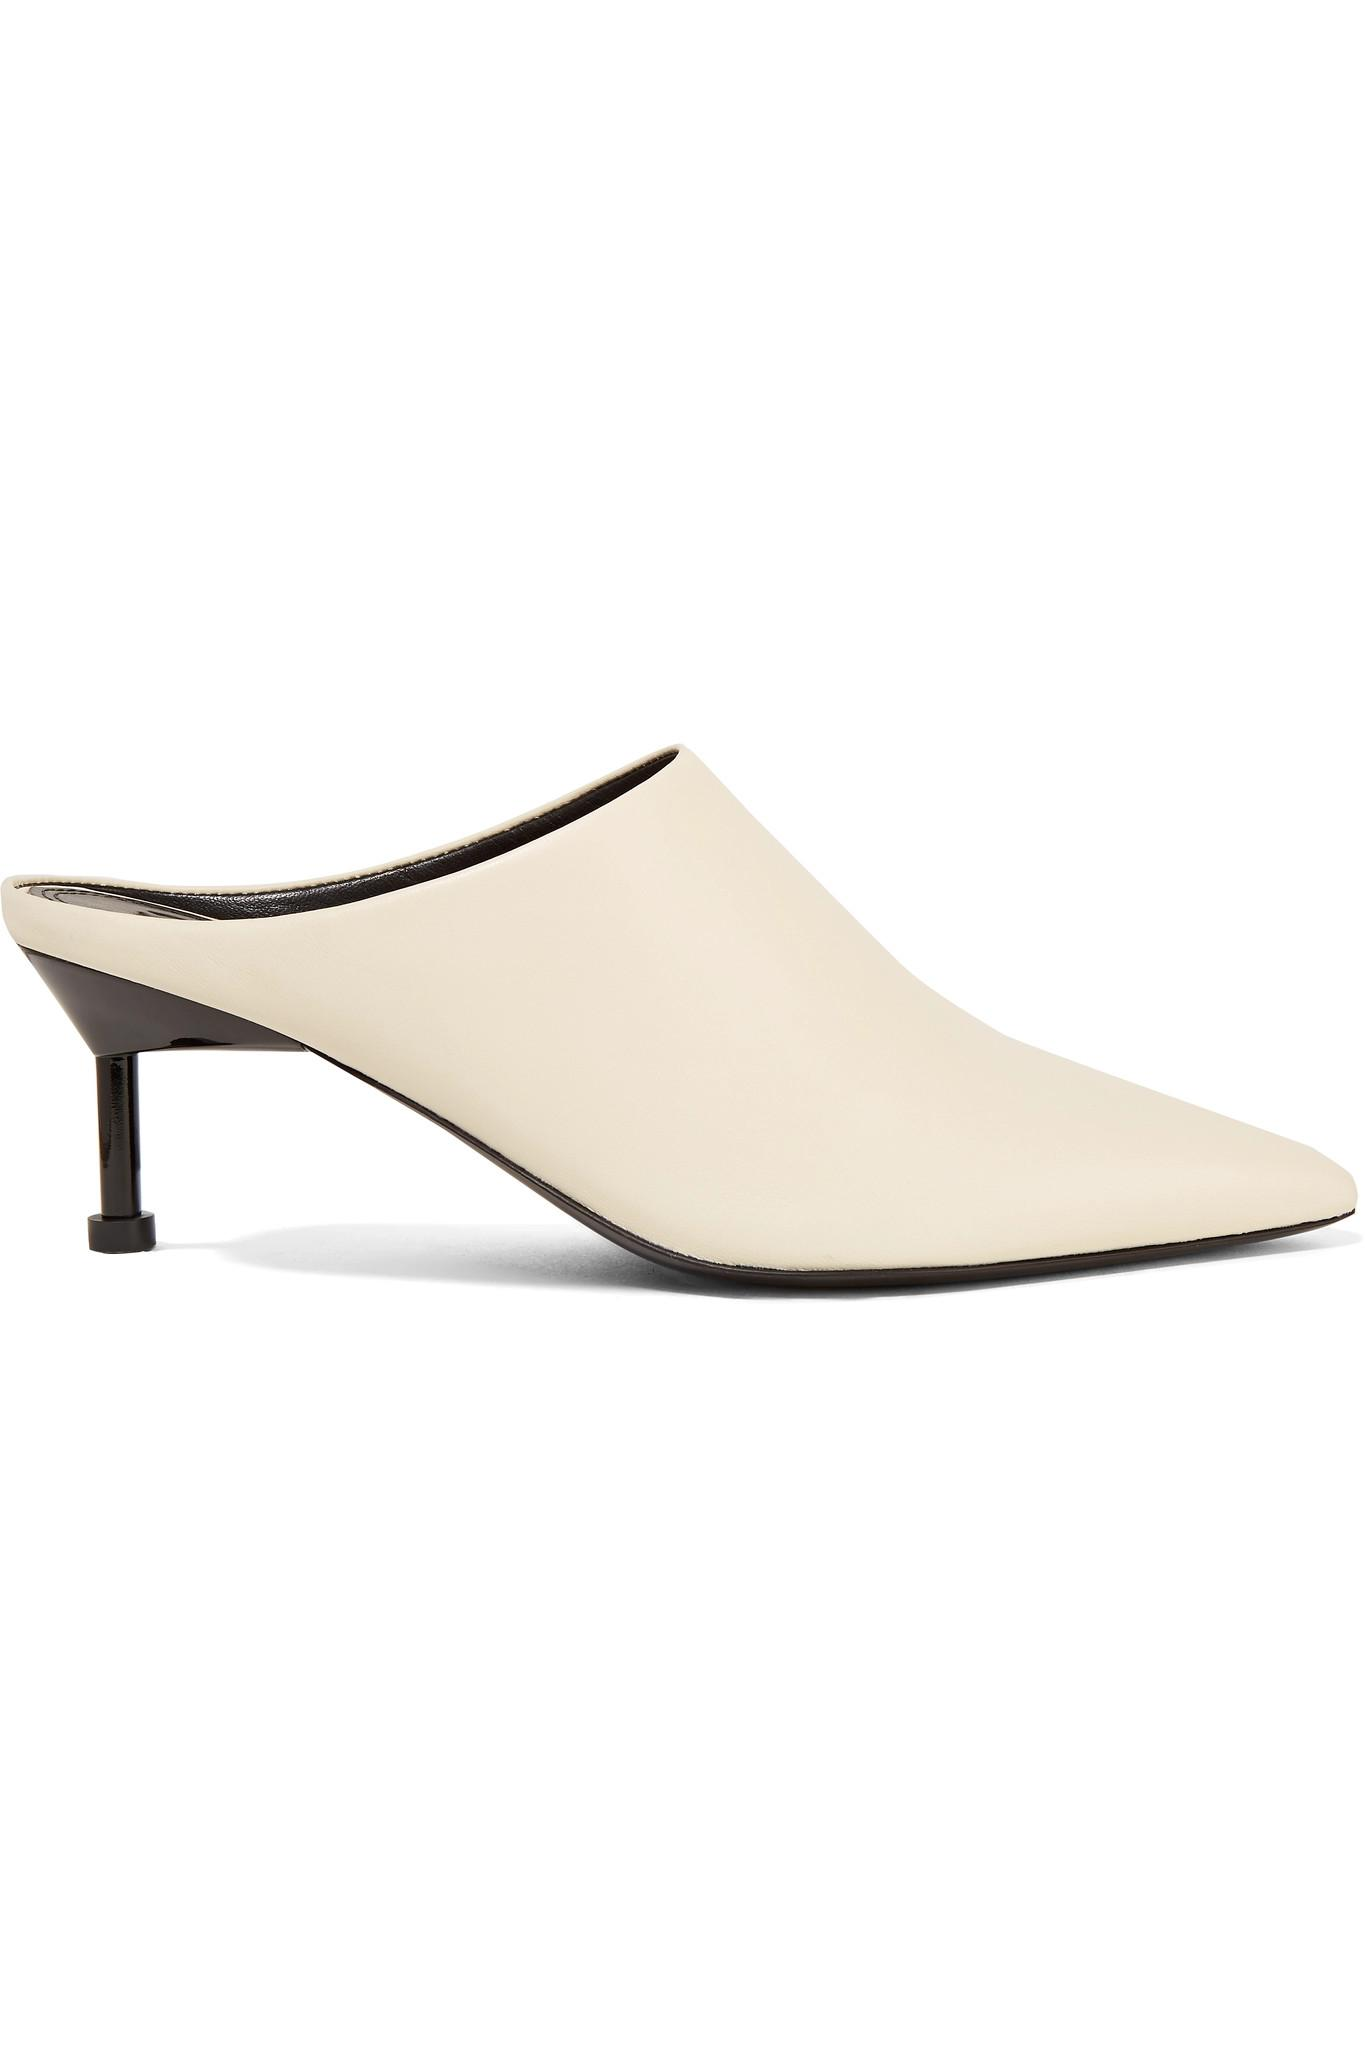 be9ccc997a4 Lyst - MERCEDES CASTILLO Kace Leather Mules in White